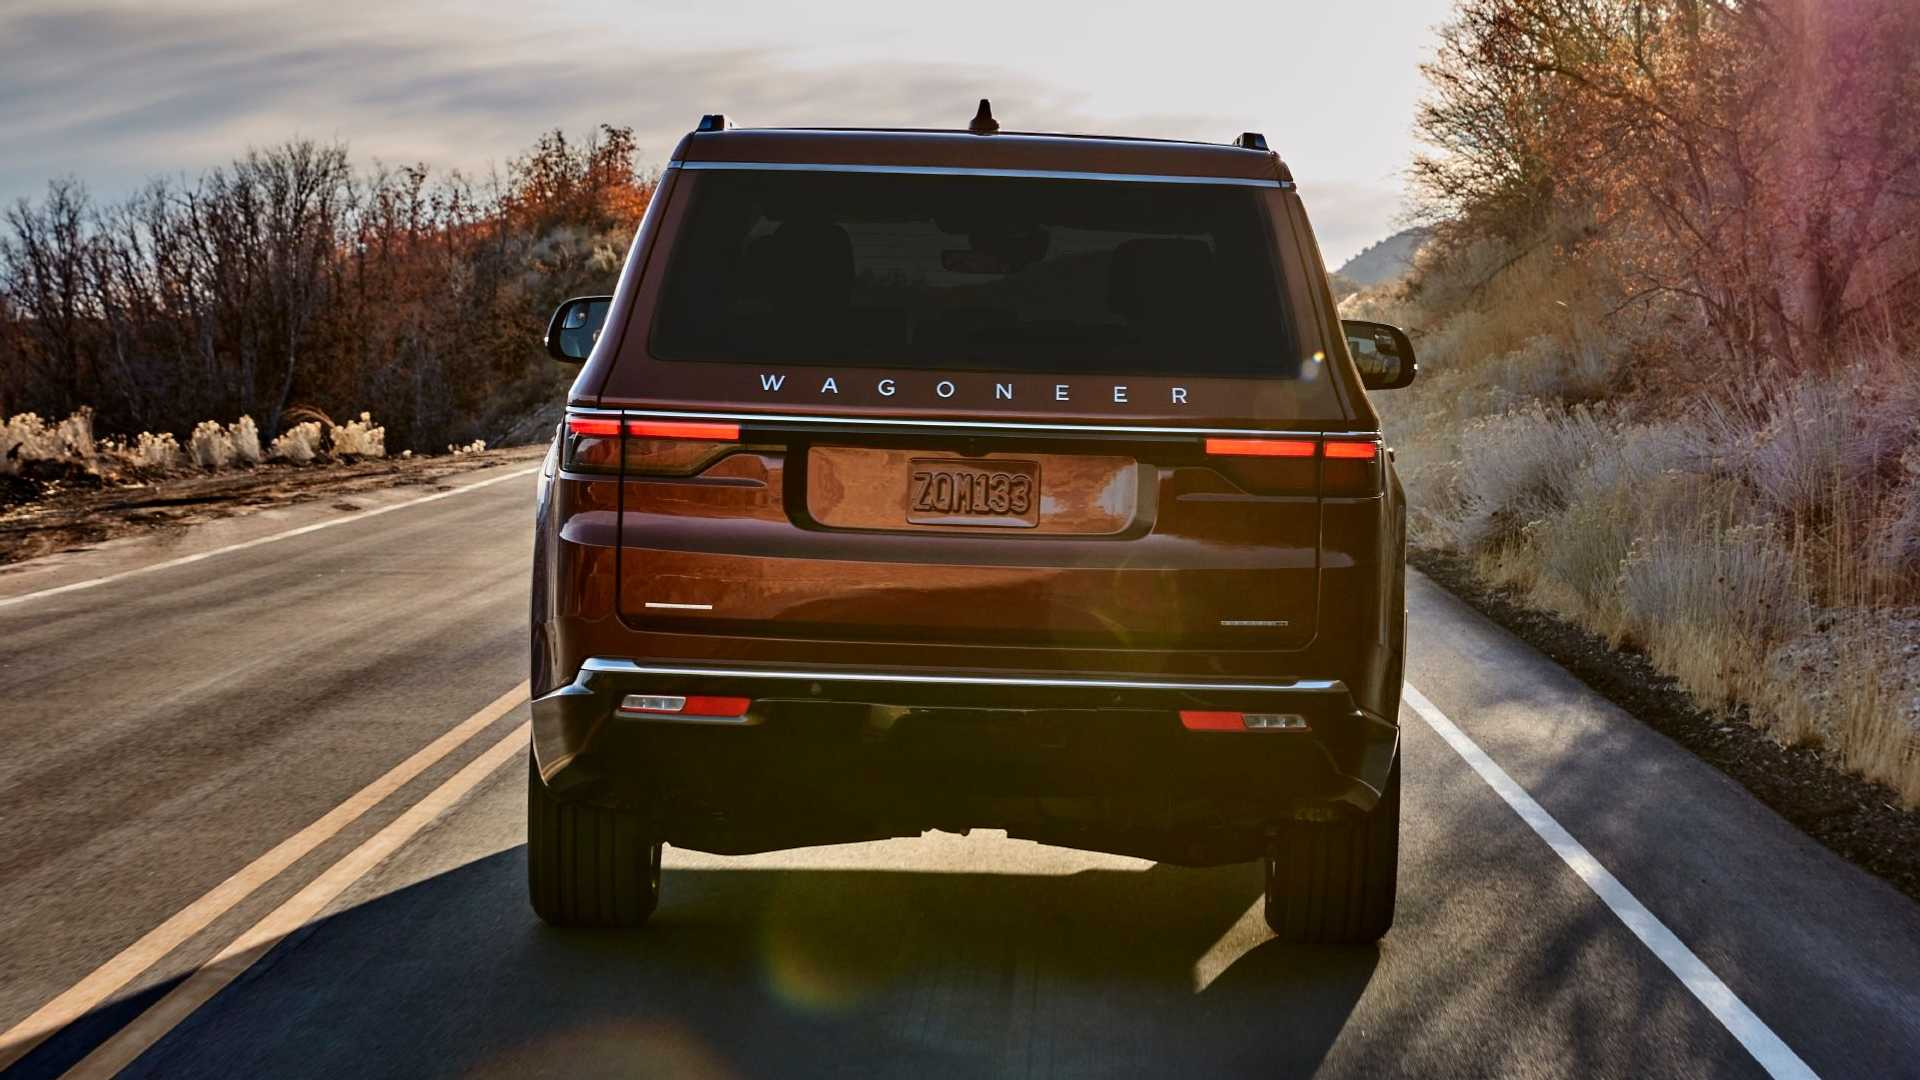 2022-jeep-wagoneer-exterior-rear-view